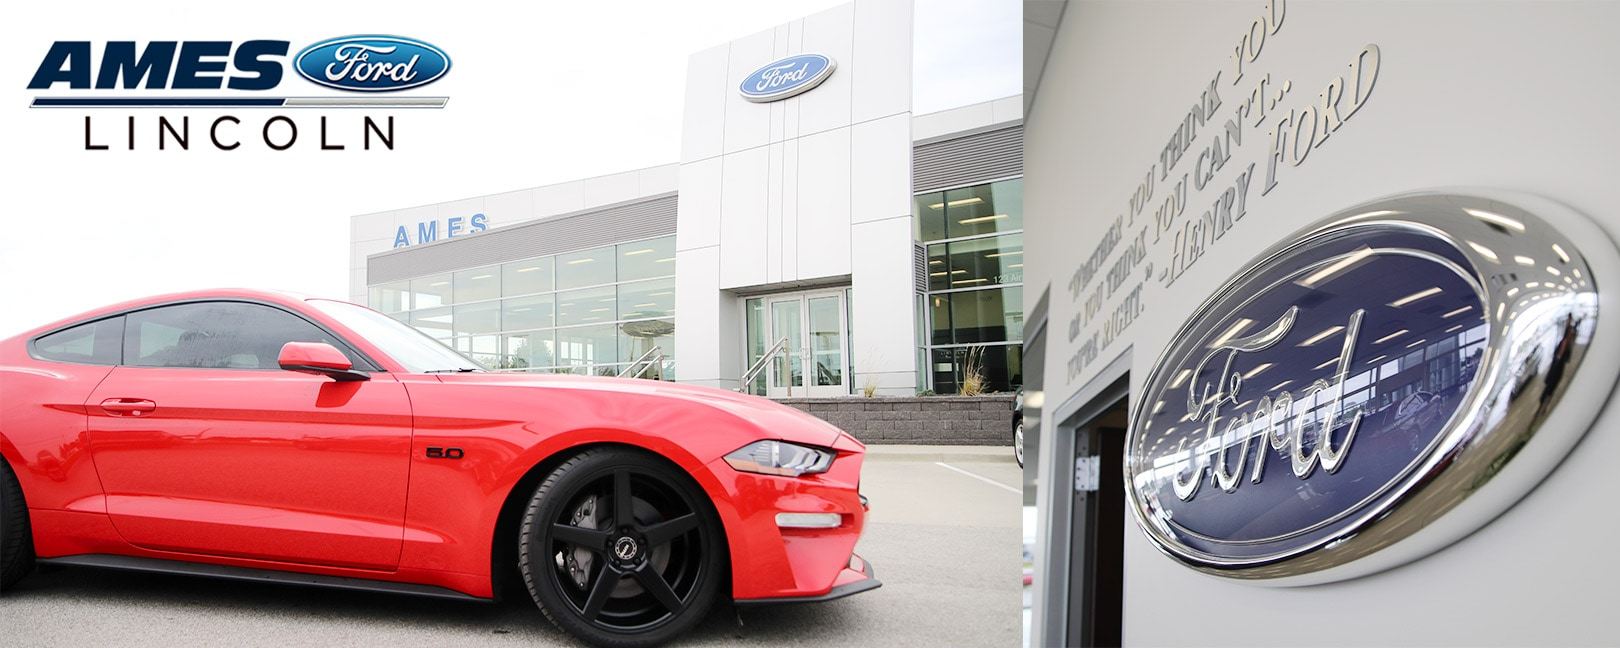 Ames ford ford mustang dealer in iowa